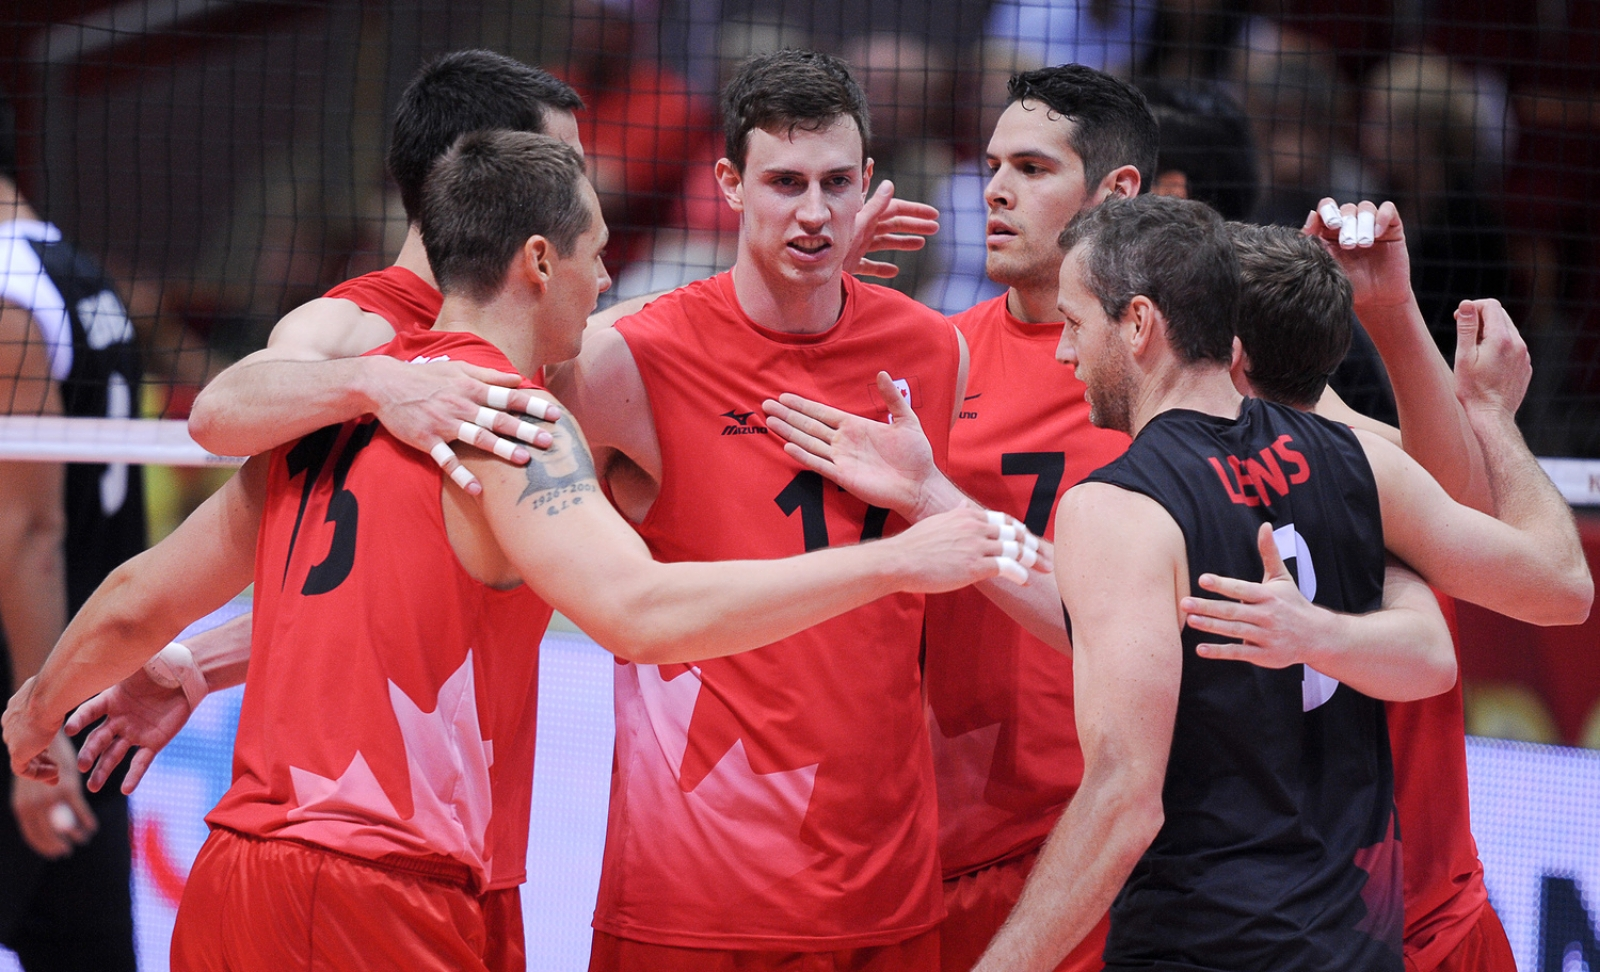 New faces, same result. Canada blows past Mexico 3-0 and clinches their spot in Phase 2 of the 2014 FIVB World Championships in Poland. They finish Phase 1 tomorrow at 10:30 a.m. ET against China. Photo: FIVB